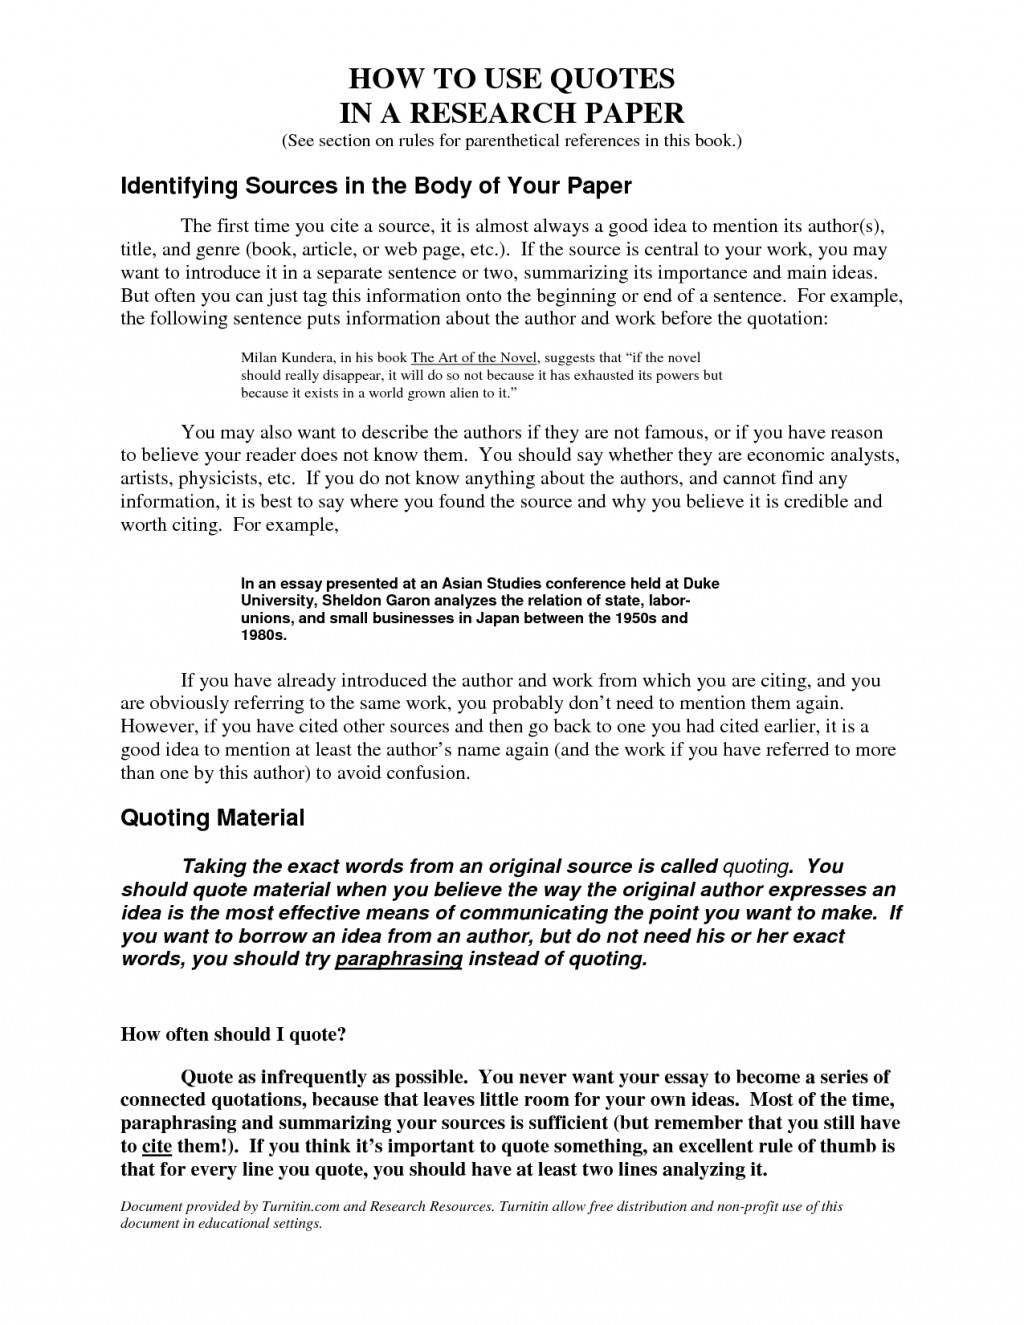 003 Best Solutions Of Writing Quotes In Essays Marvelous Embedding On Quotestopics Essay Example Quoting Frightening An A Book Harvard Mla Large